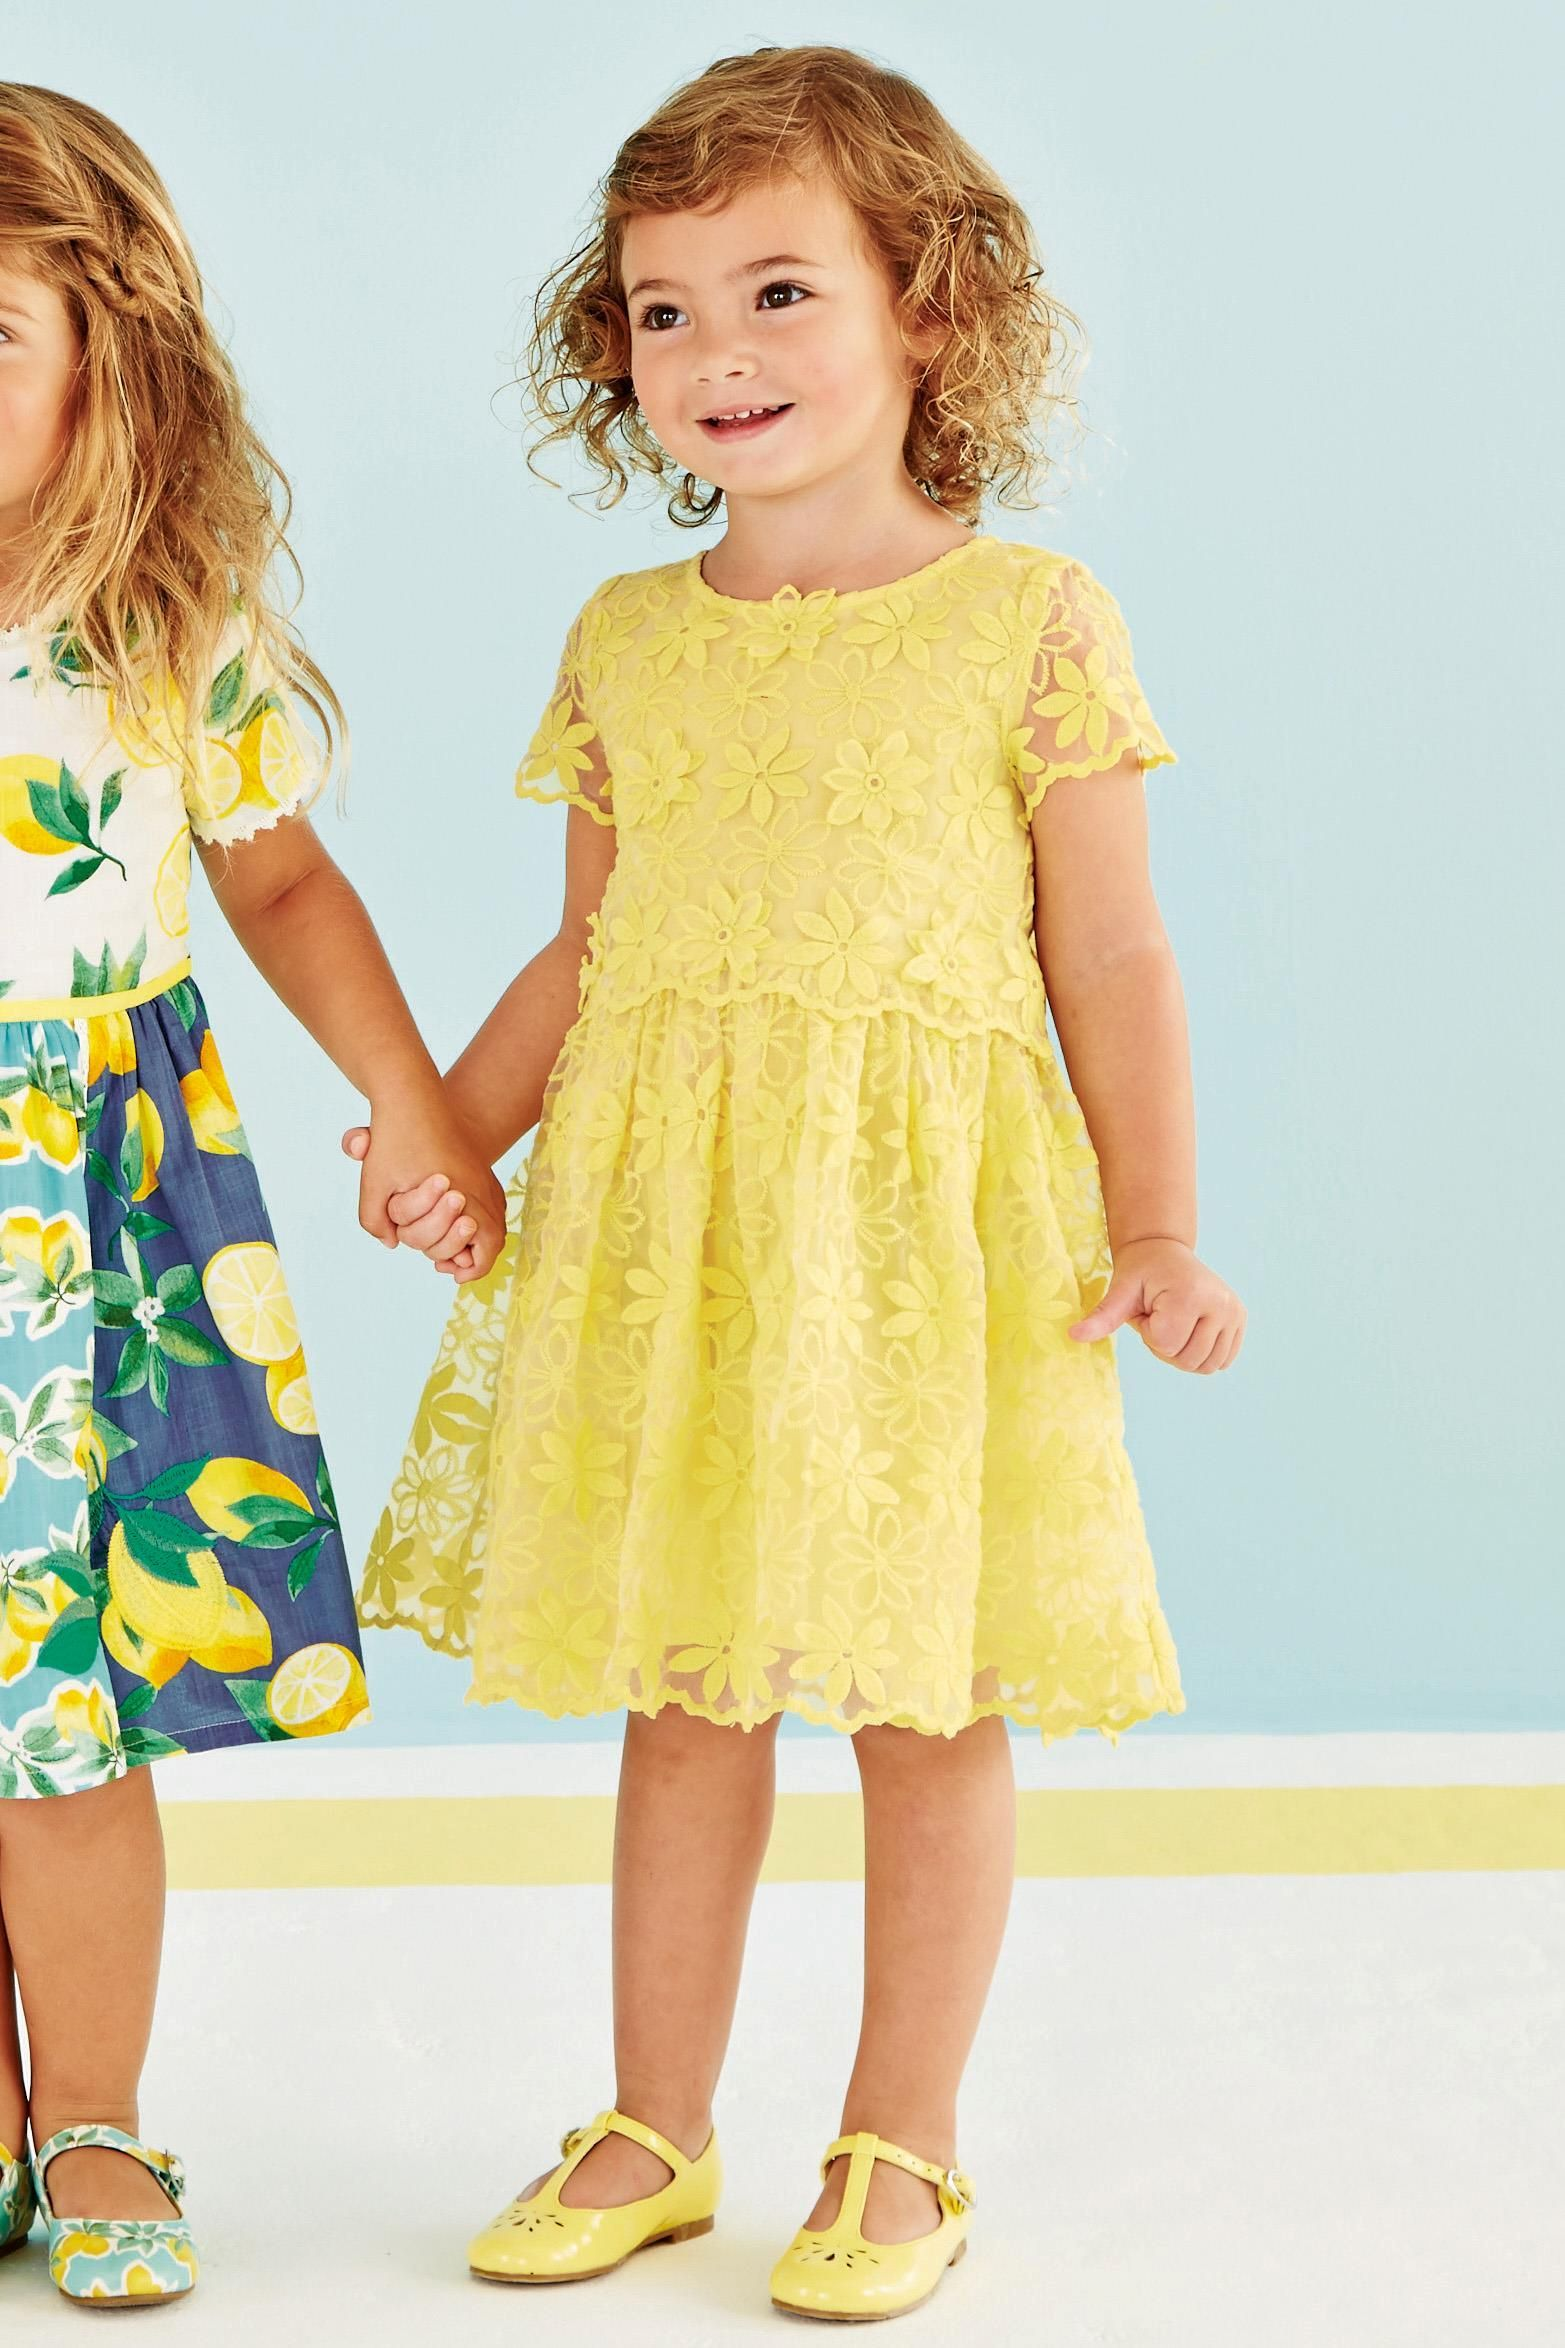 Buy Yellow Lace Dress 3mths 6yrs From The Next Uk Online Shop